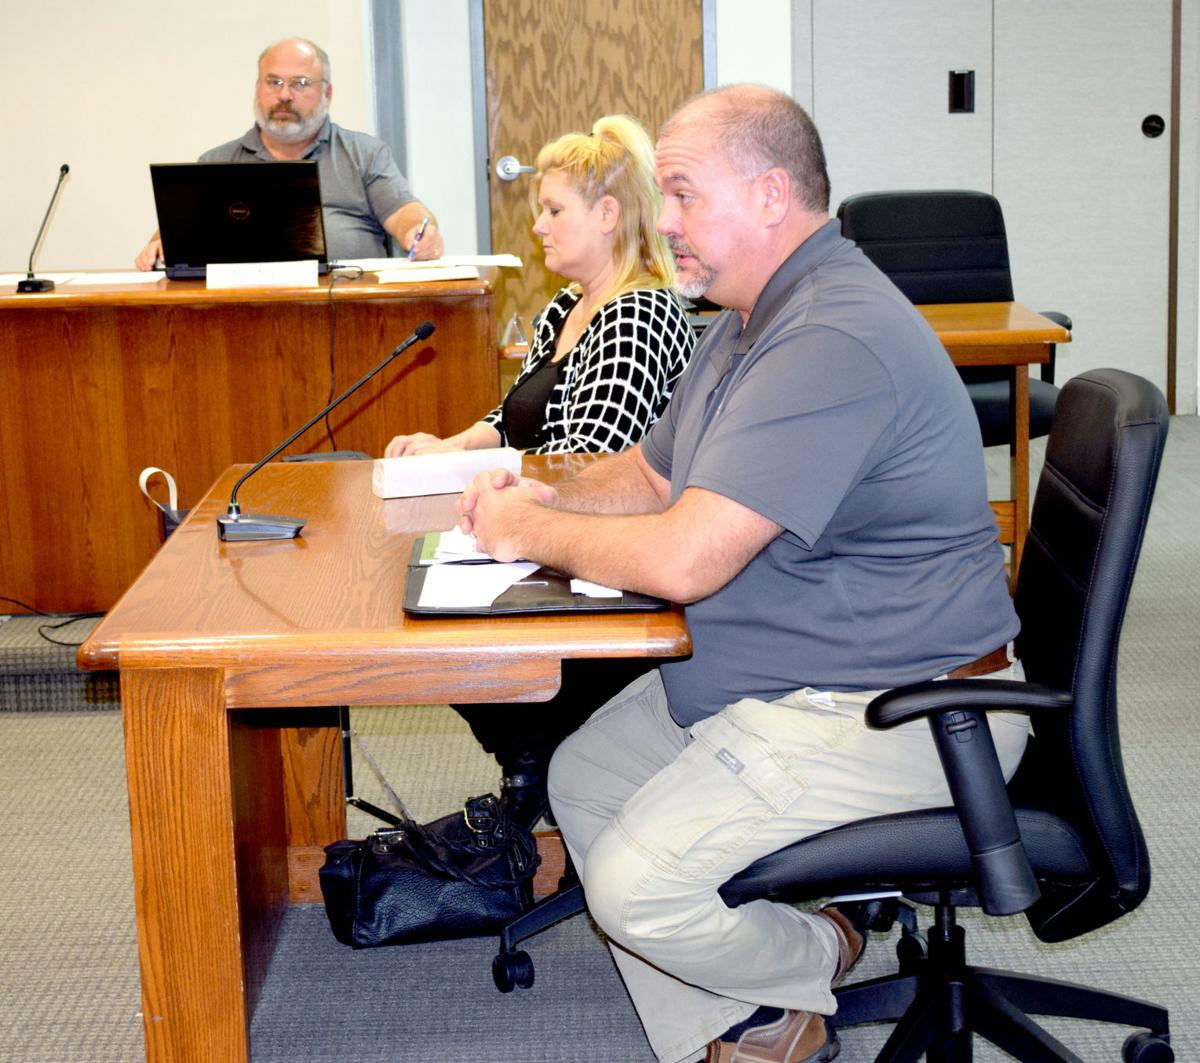 Effingham approves two zoning requests